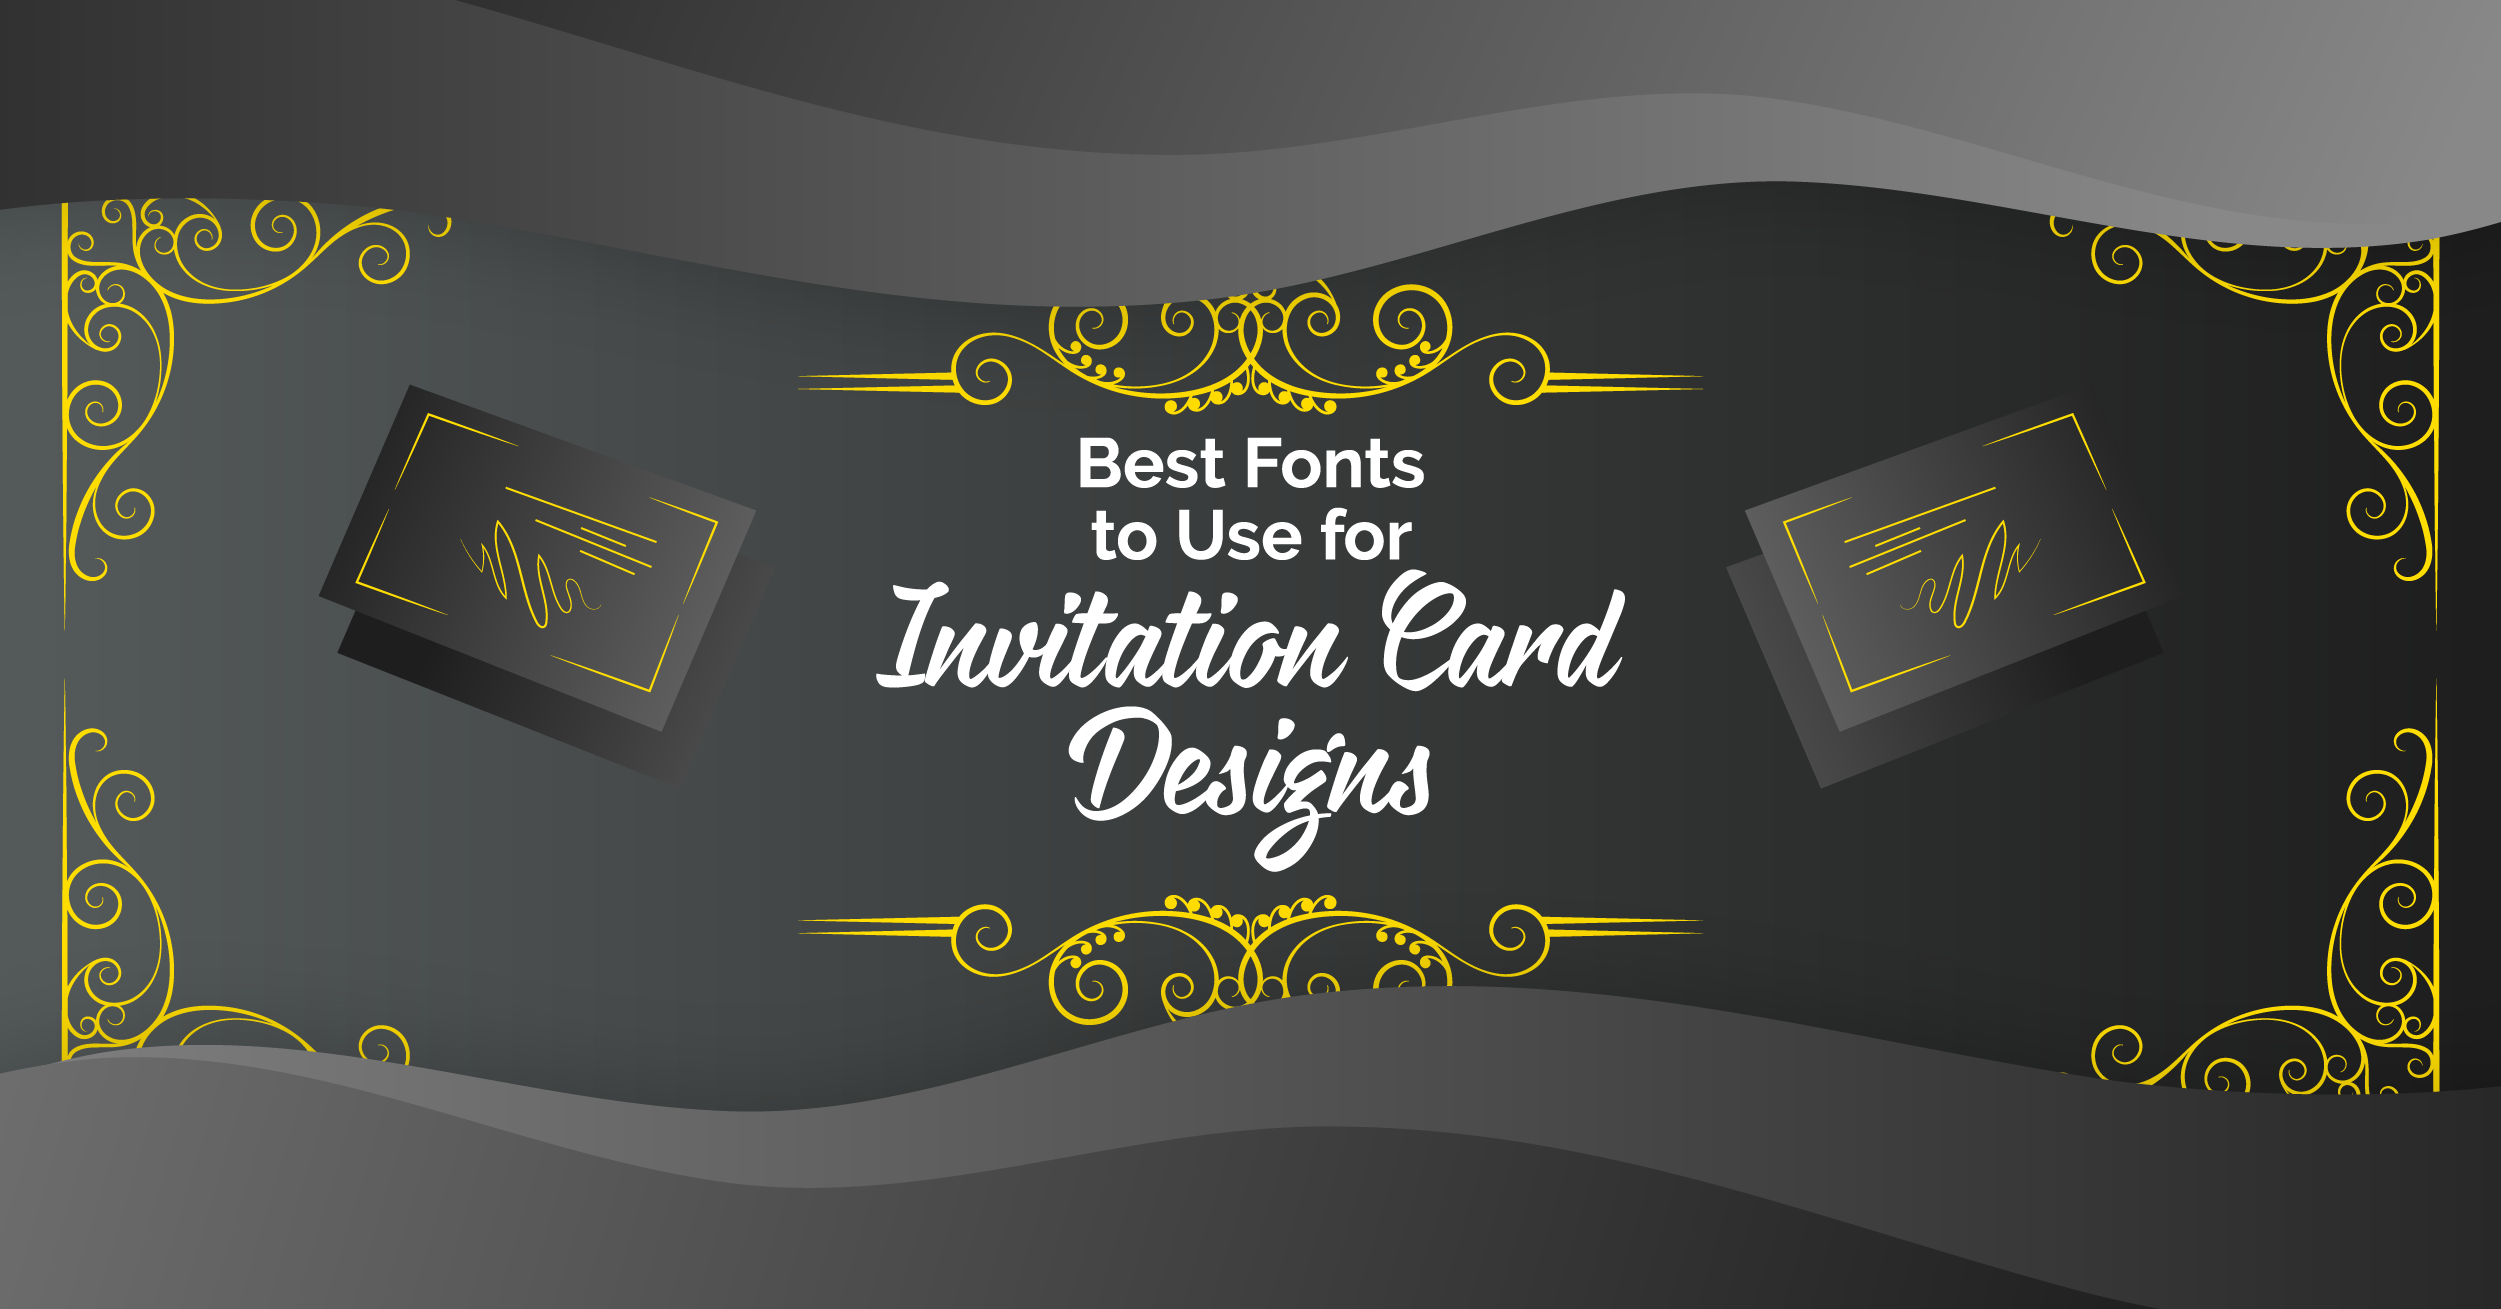 Best Fonts to Use for Invitation Card Designs